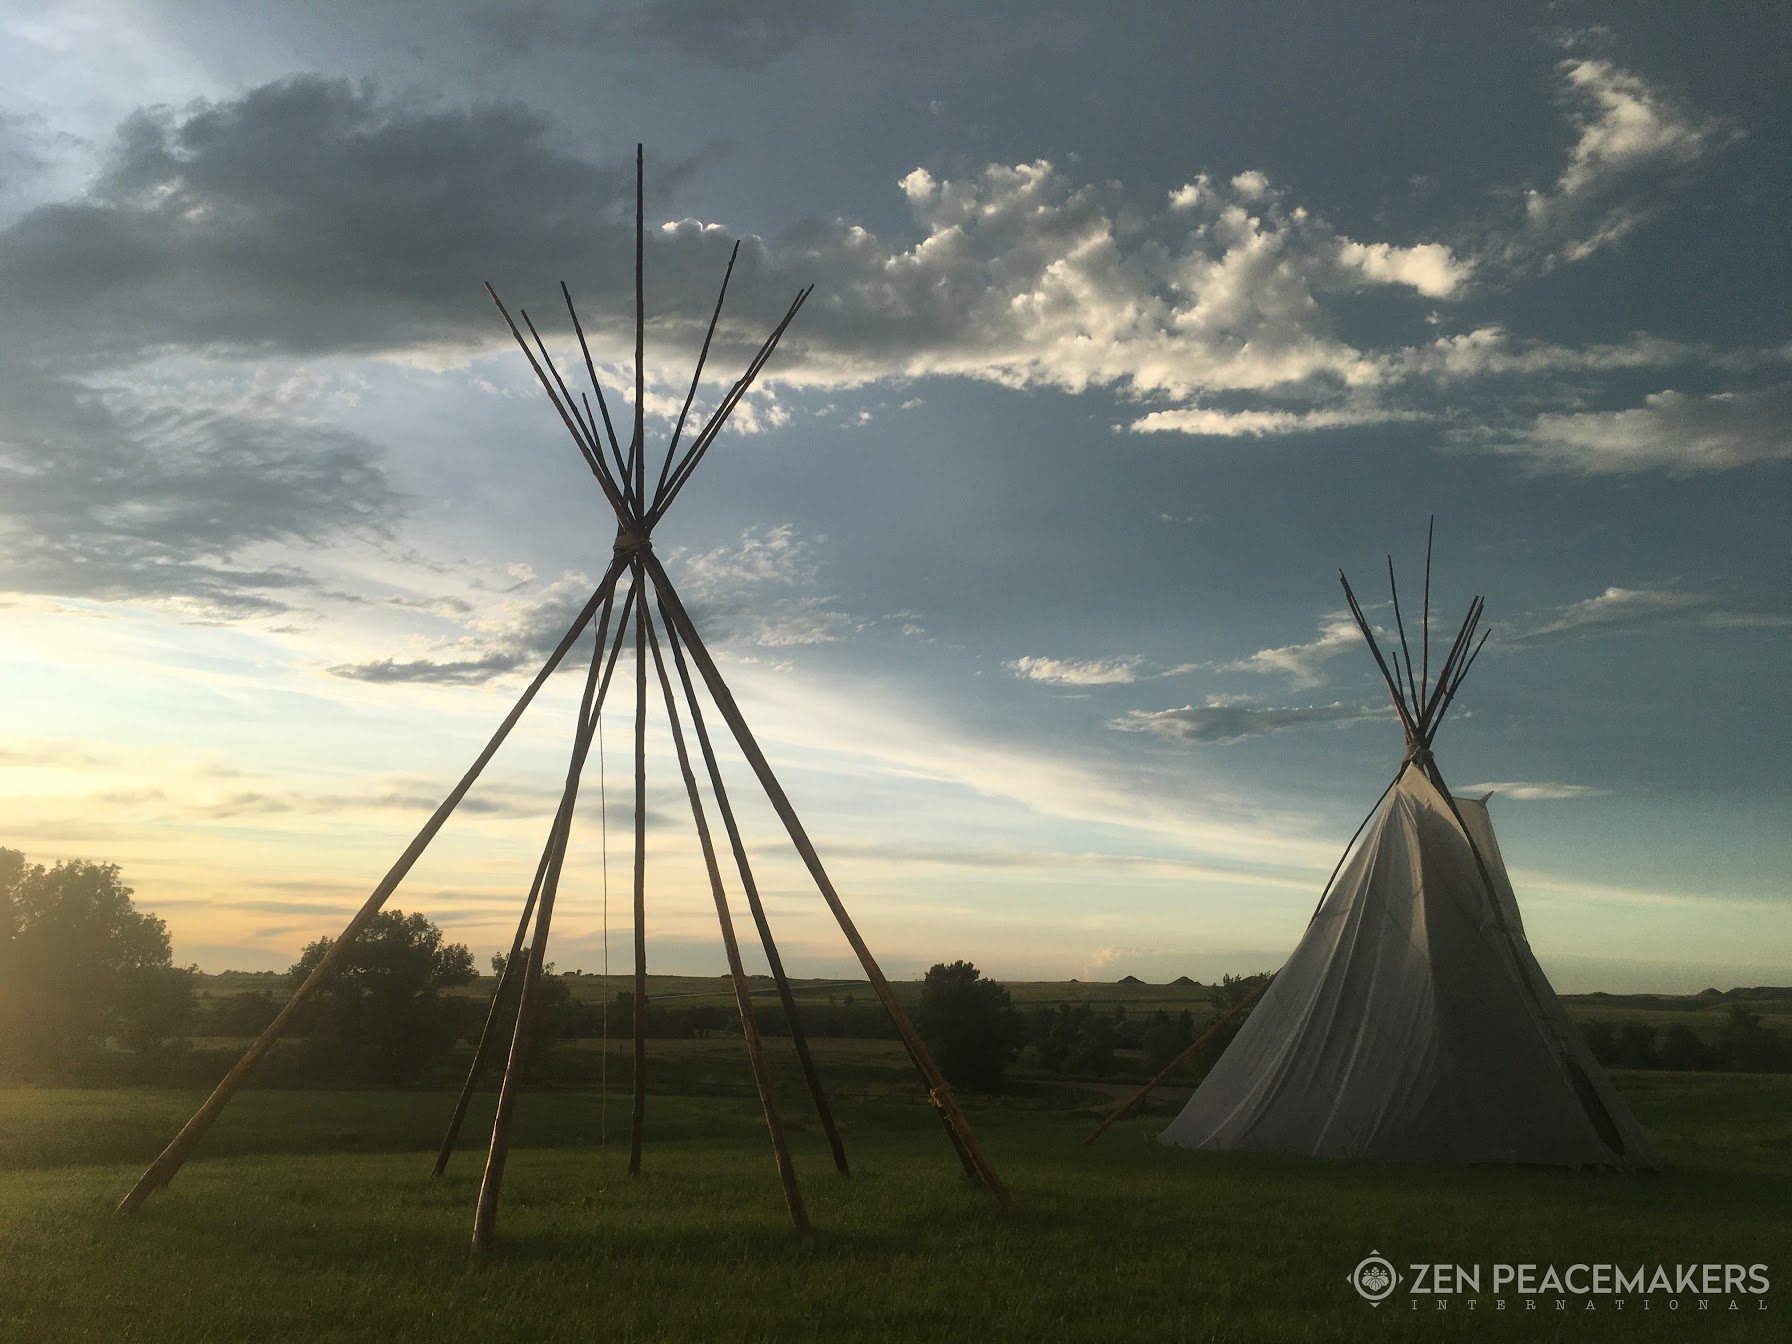 Lakota tipis at sacred site of Bear Butte, South Dakota - moments before a storm rolled in.